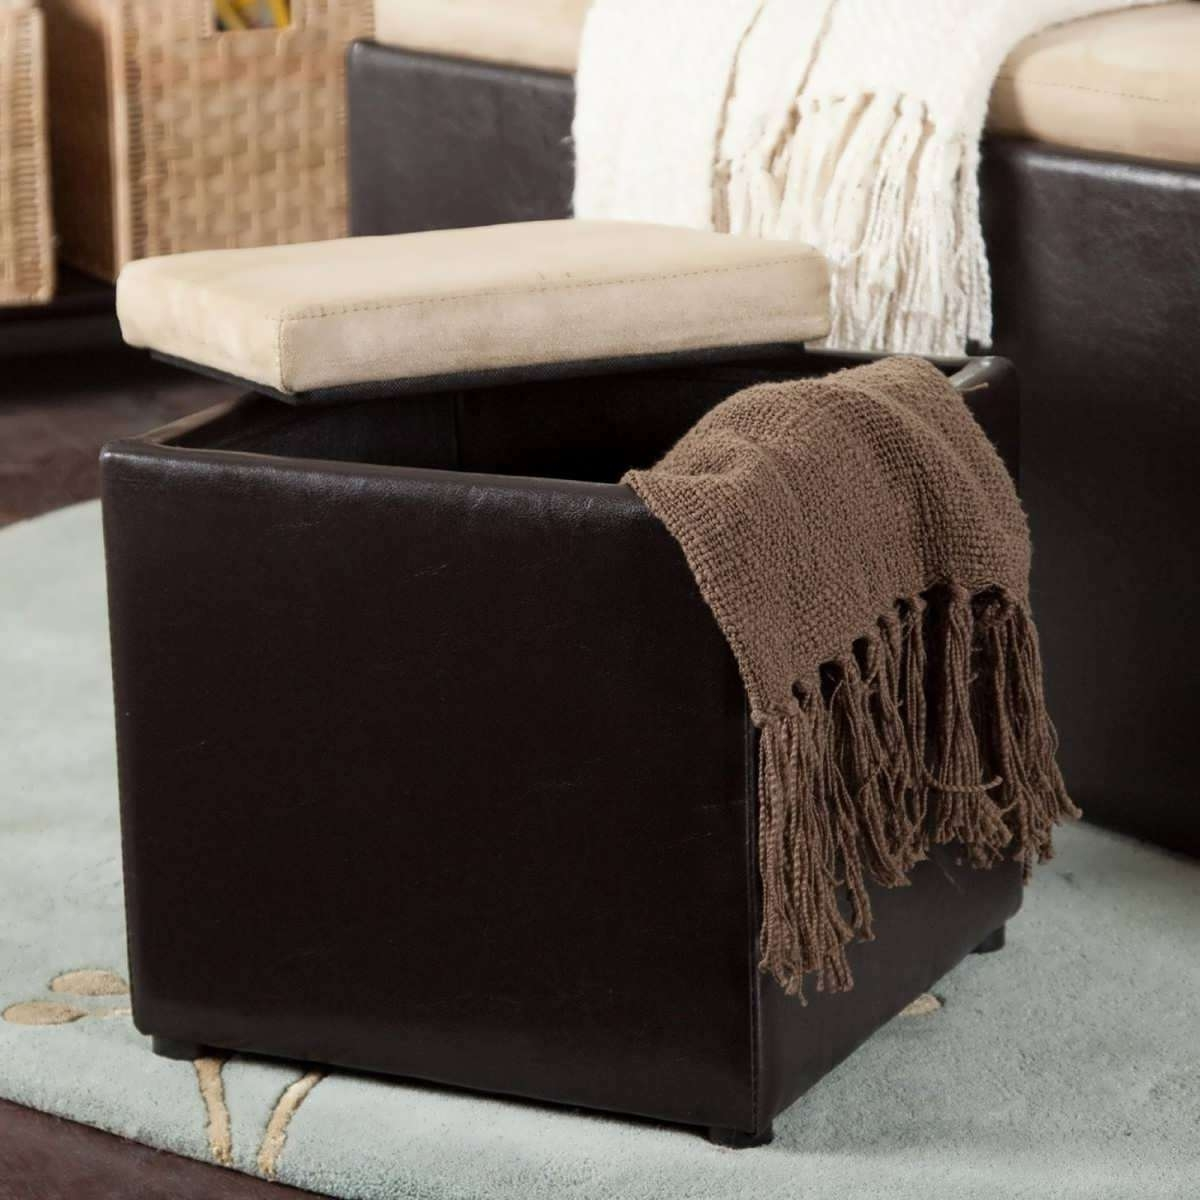 Widely Used Leopard Ottoman Coffee Tables Inside Animal Print Ottoman Coffee Table • Coffee Table Design (View 20 of 20)